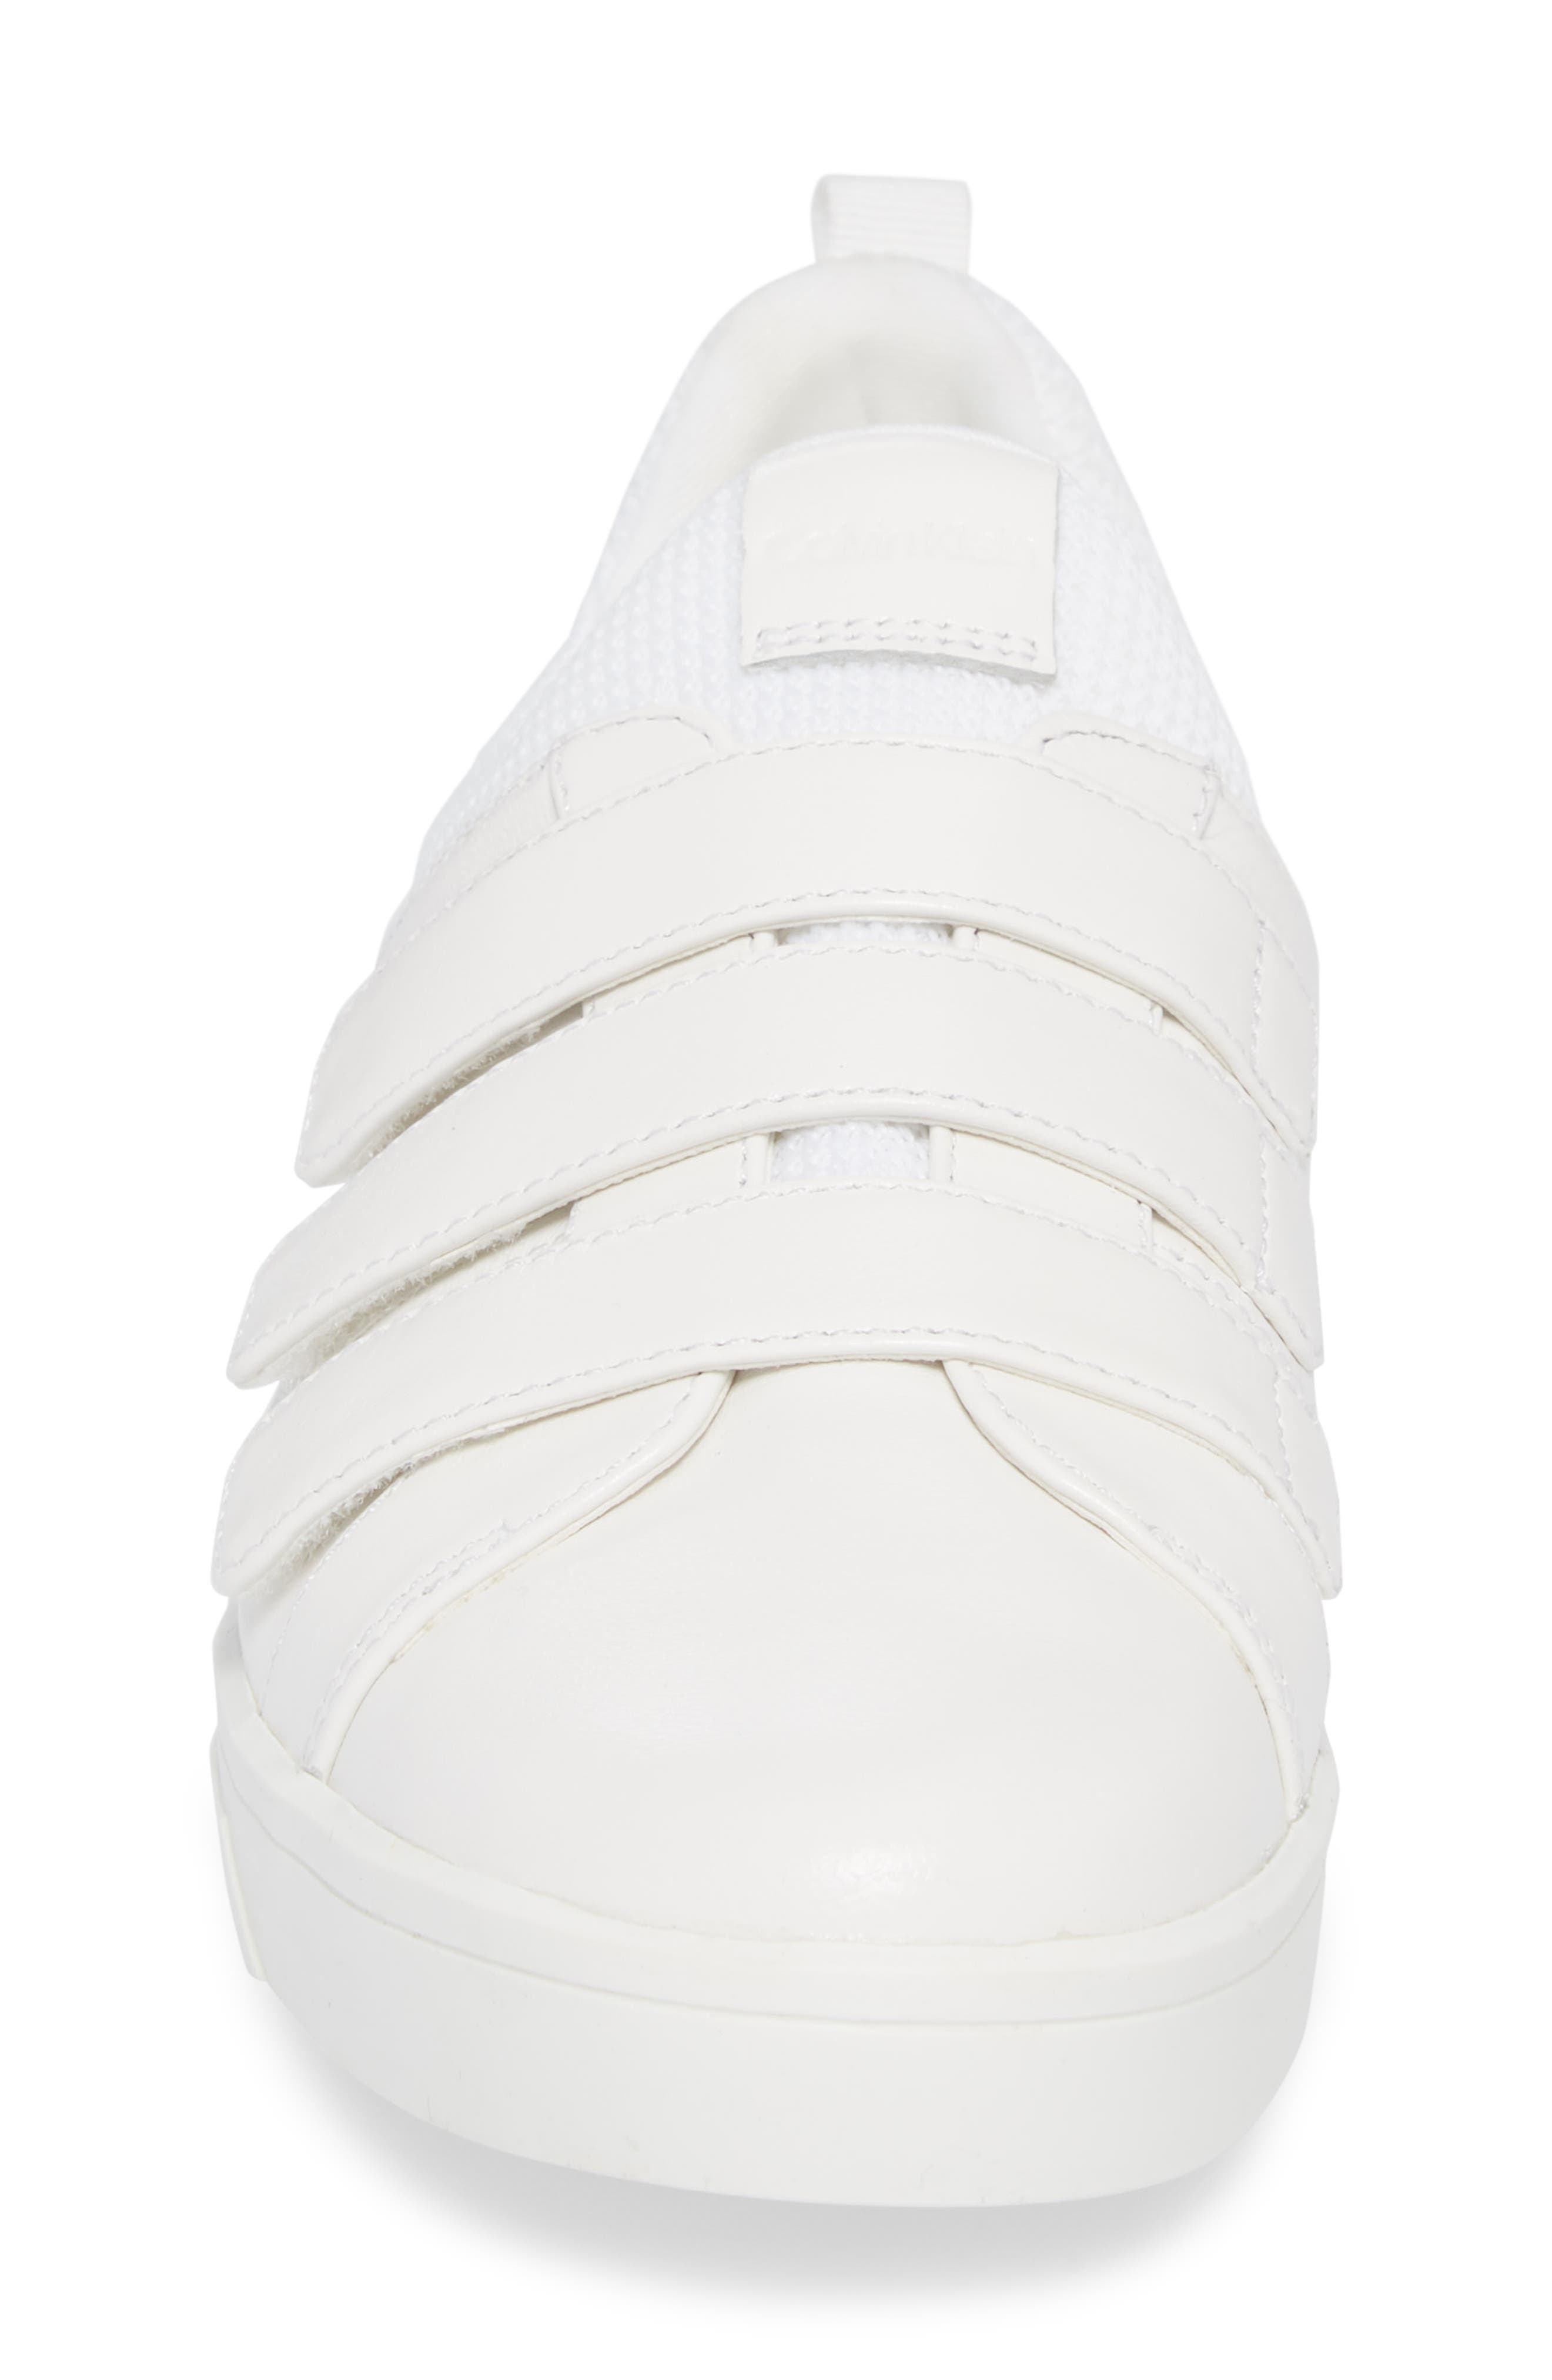 Irah Sneaker,                             Alternate thumbnail 4, color,                             WHITE LEATHER